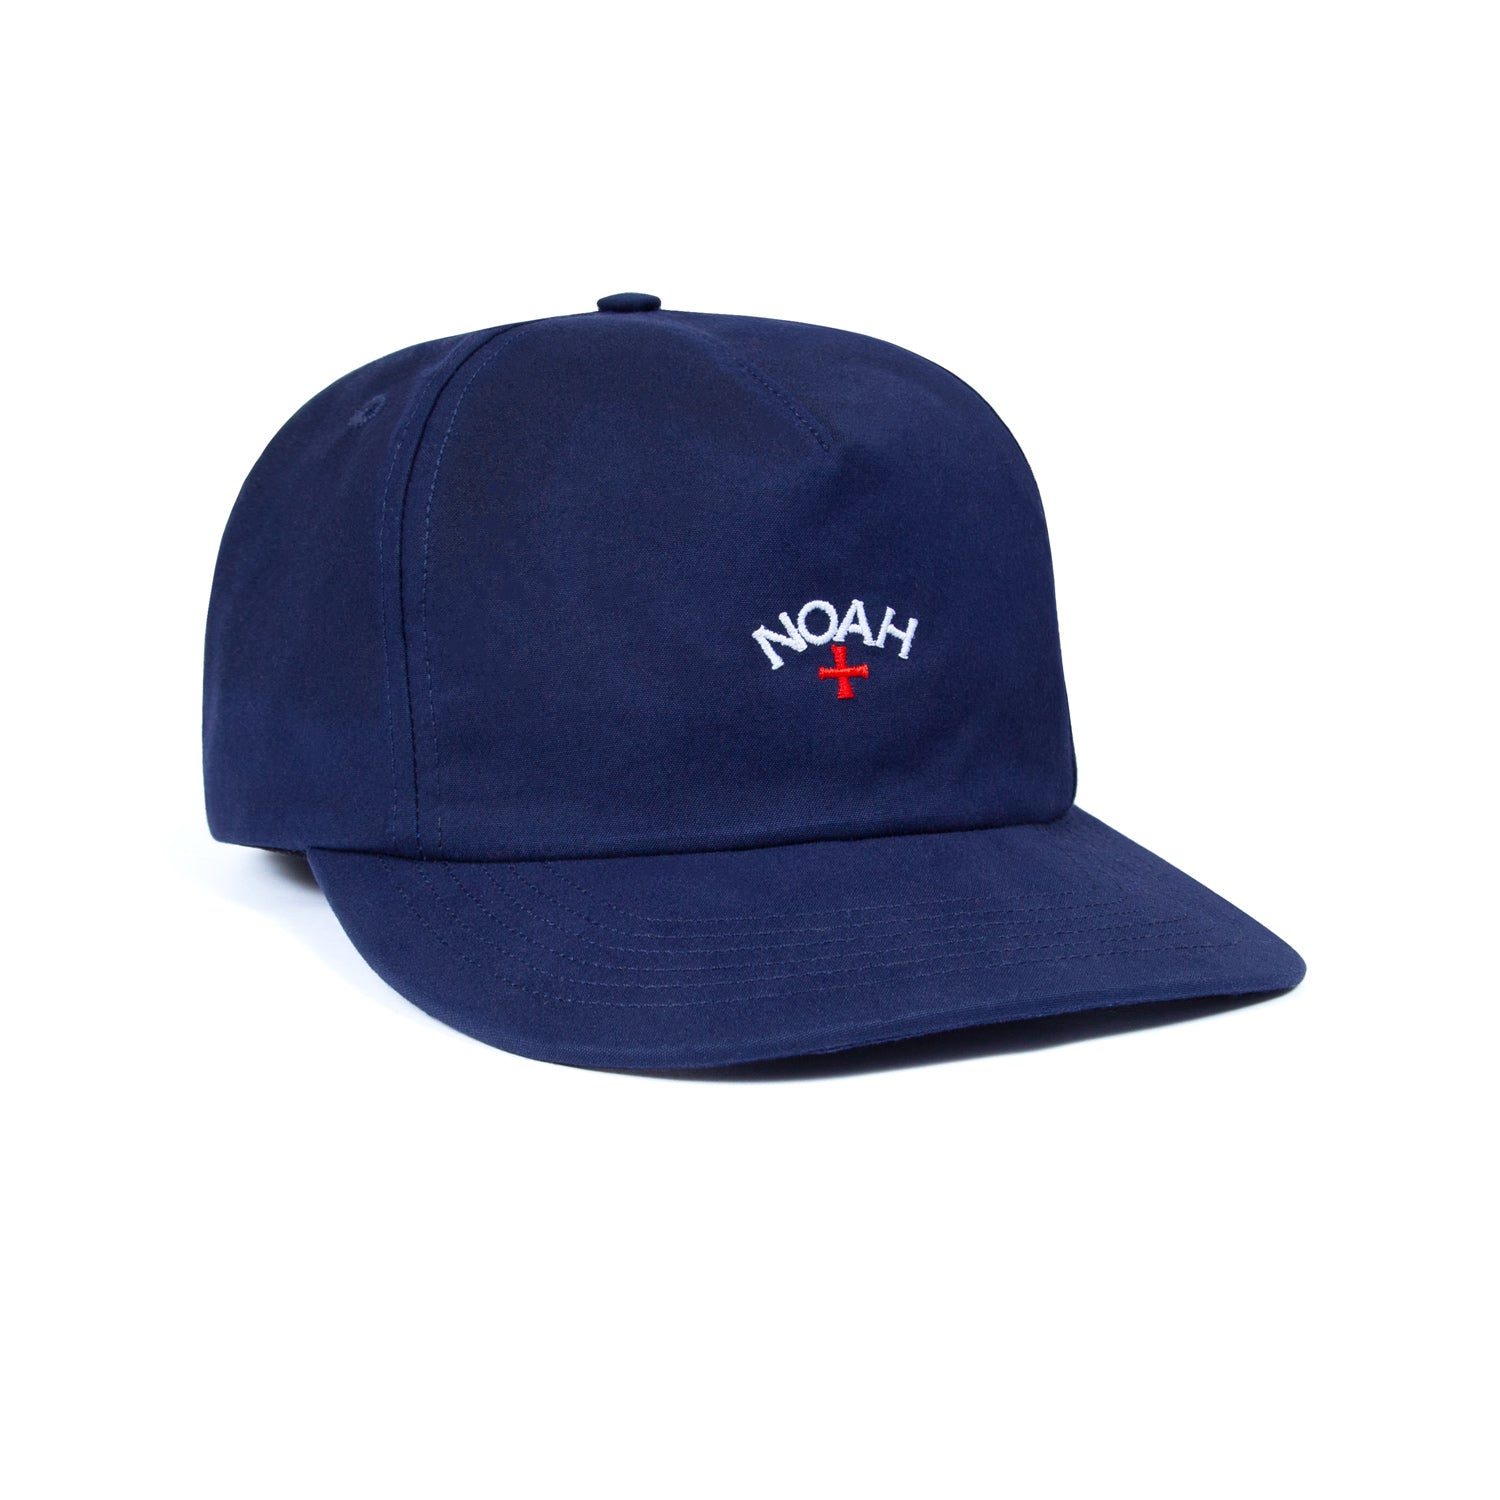 color:dark navy